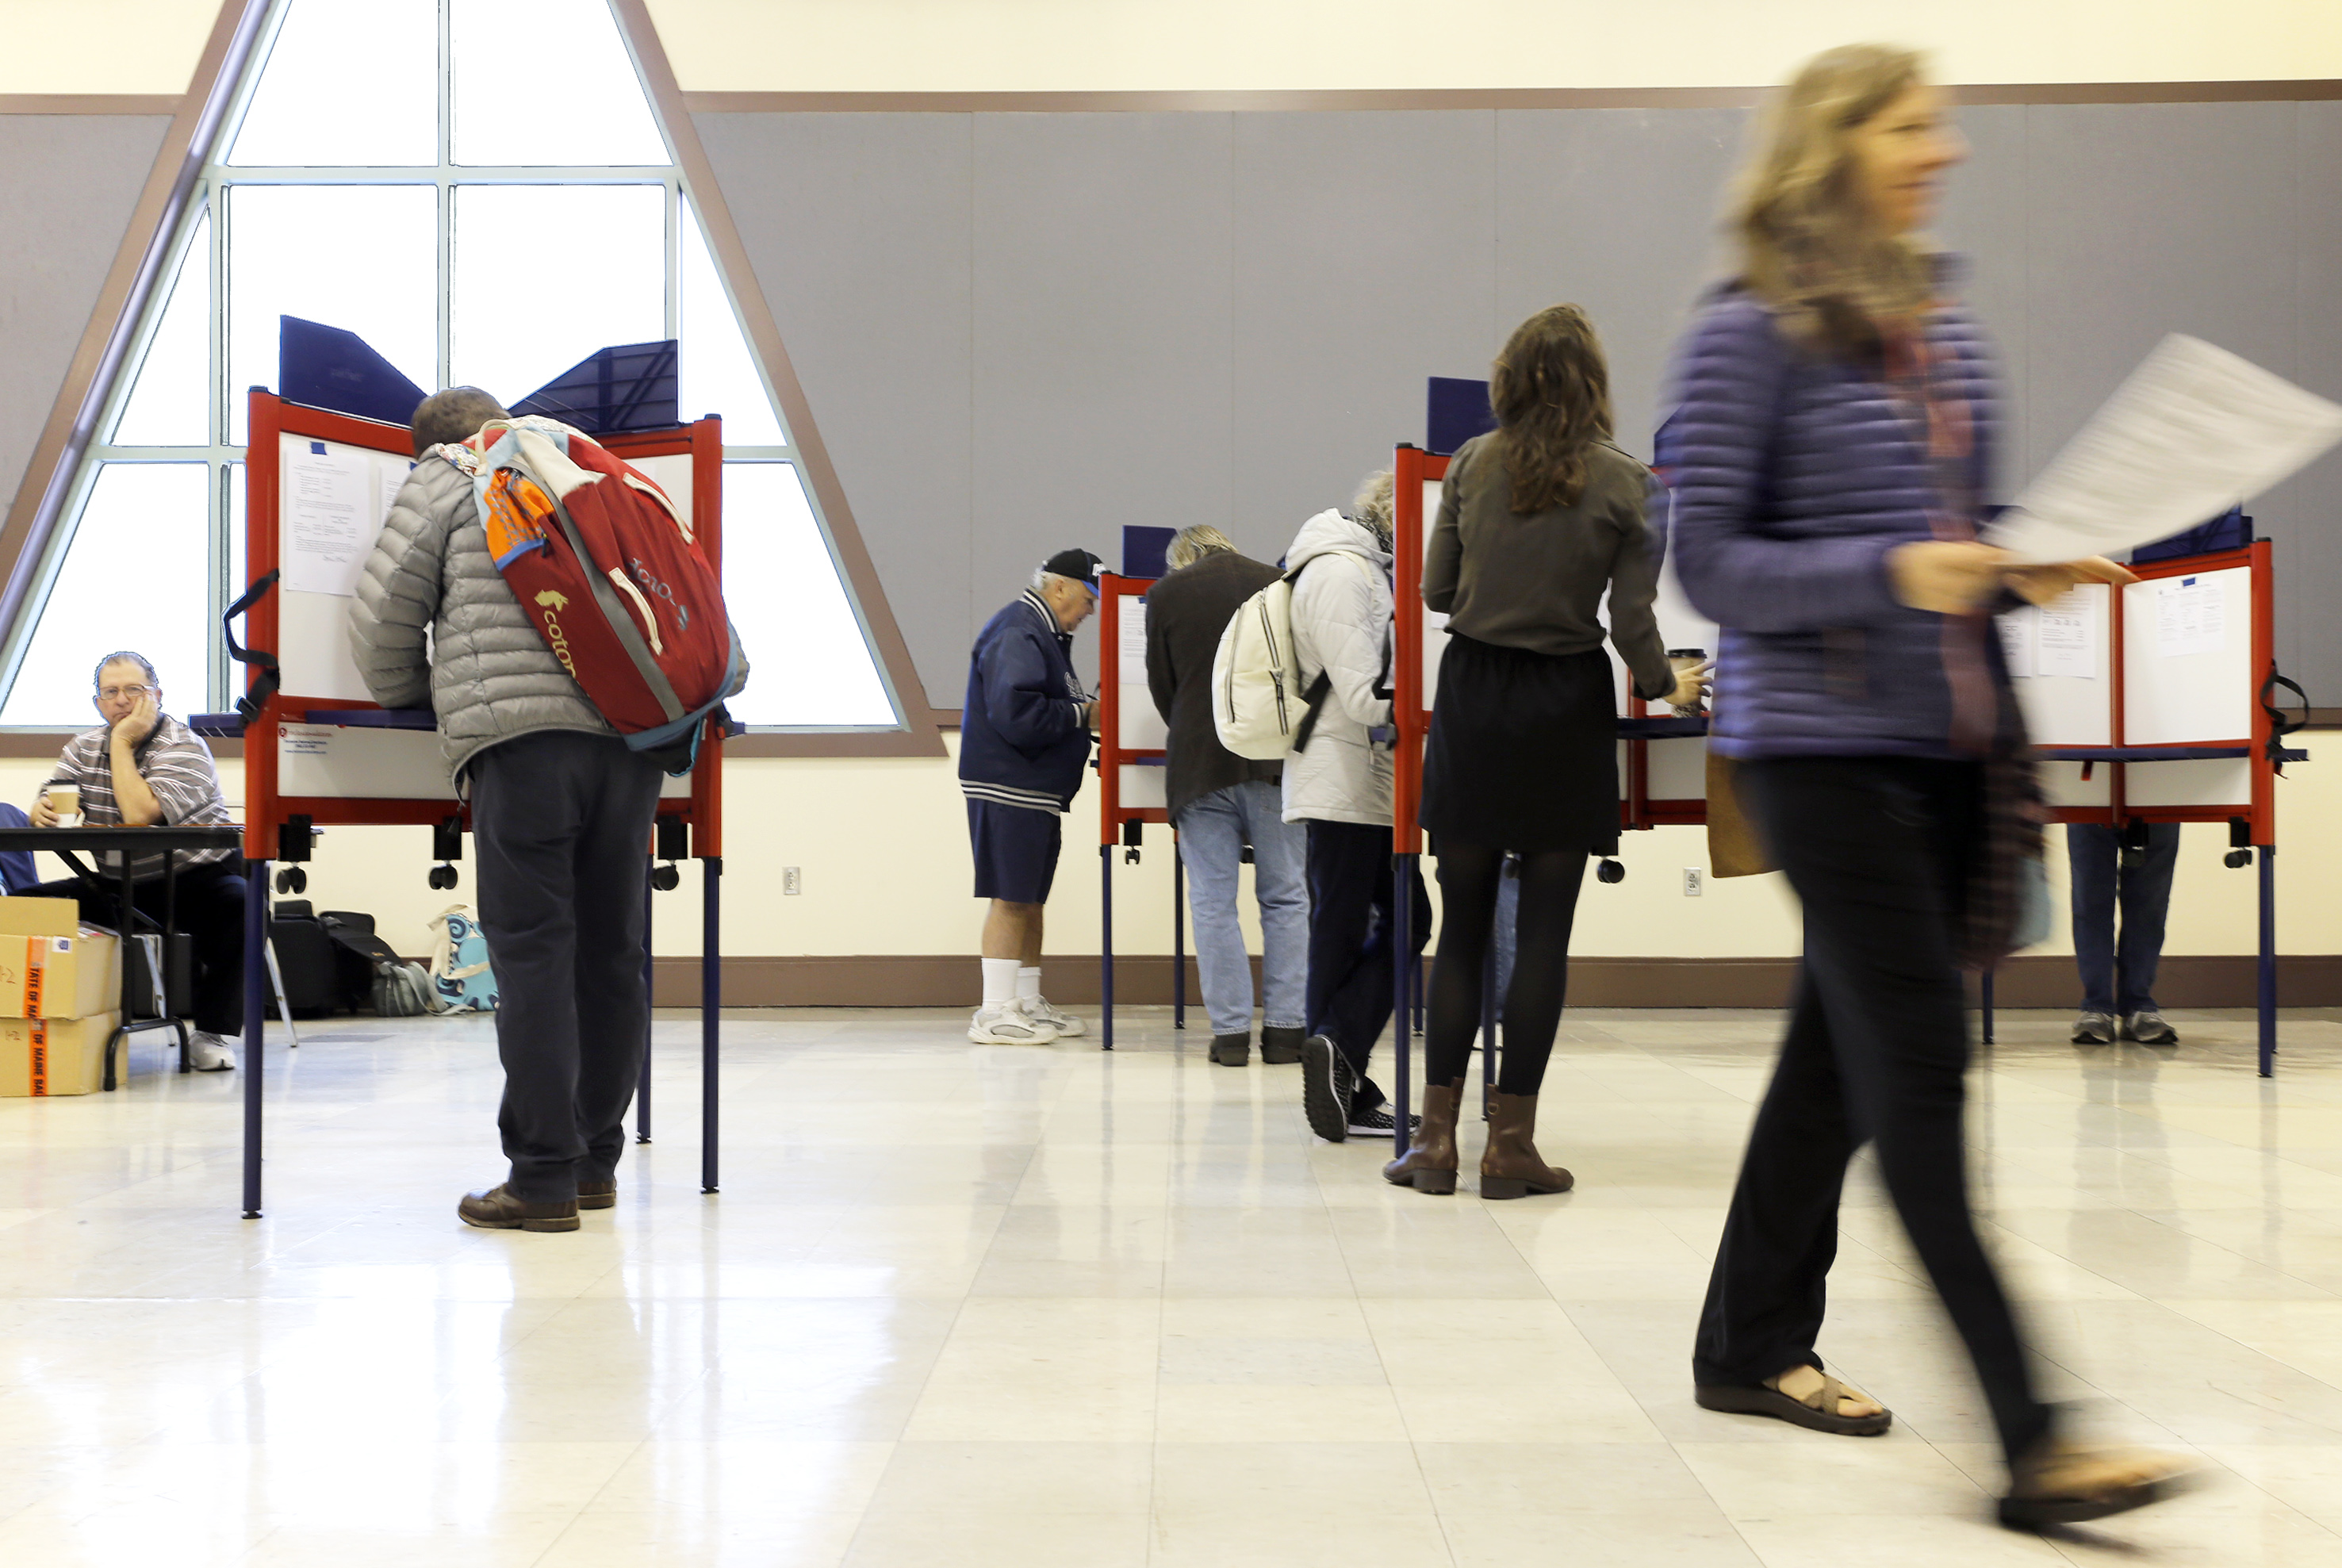 Sue Vittner, right, walks her completed ballot to the scanning booth at the Merrill Auditorium voting station Tuesday morning. Turnout at the station has been pretty good, according to Election Warden Carol . Democrats are paying emphasis to the Secretary of State since they are administering the ballots for the 2018 Midterm Elections. (Staff photo by Ben McCanna/Portland Press Herald via Getty Images)